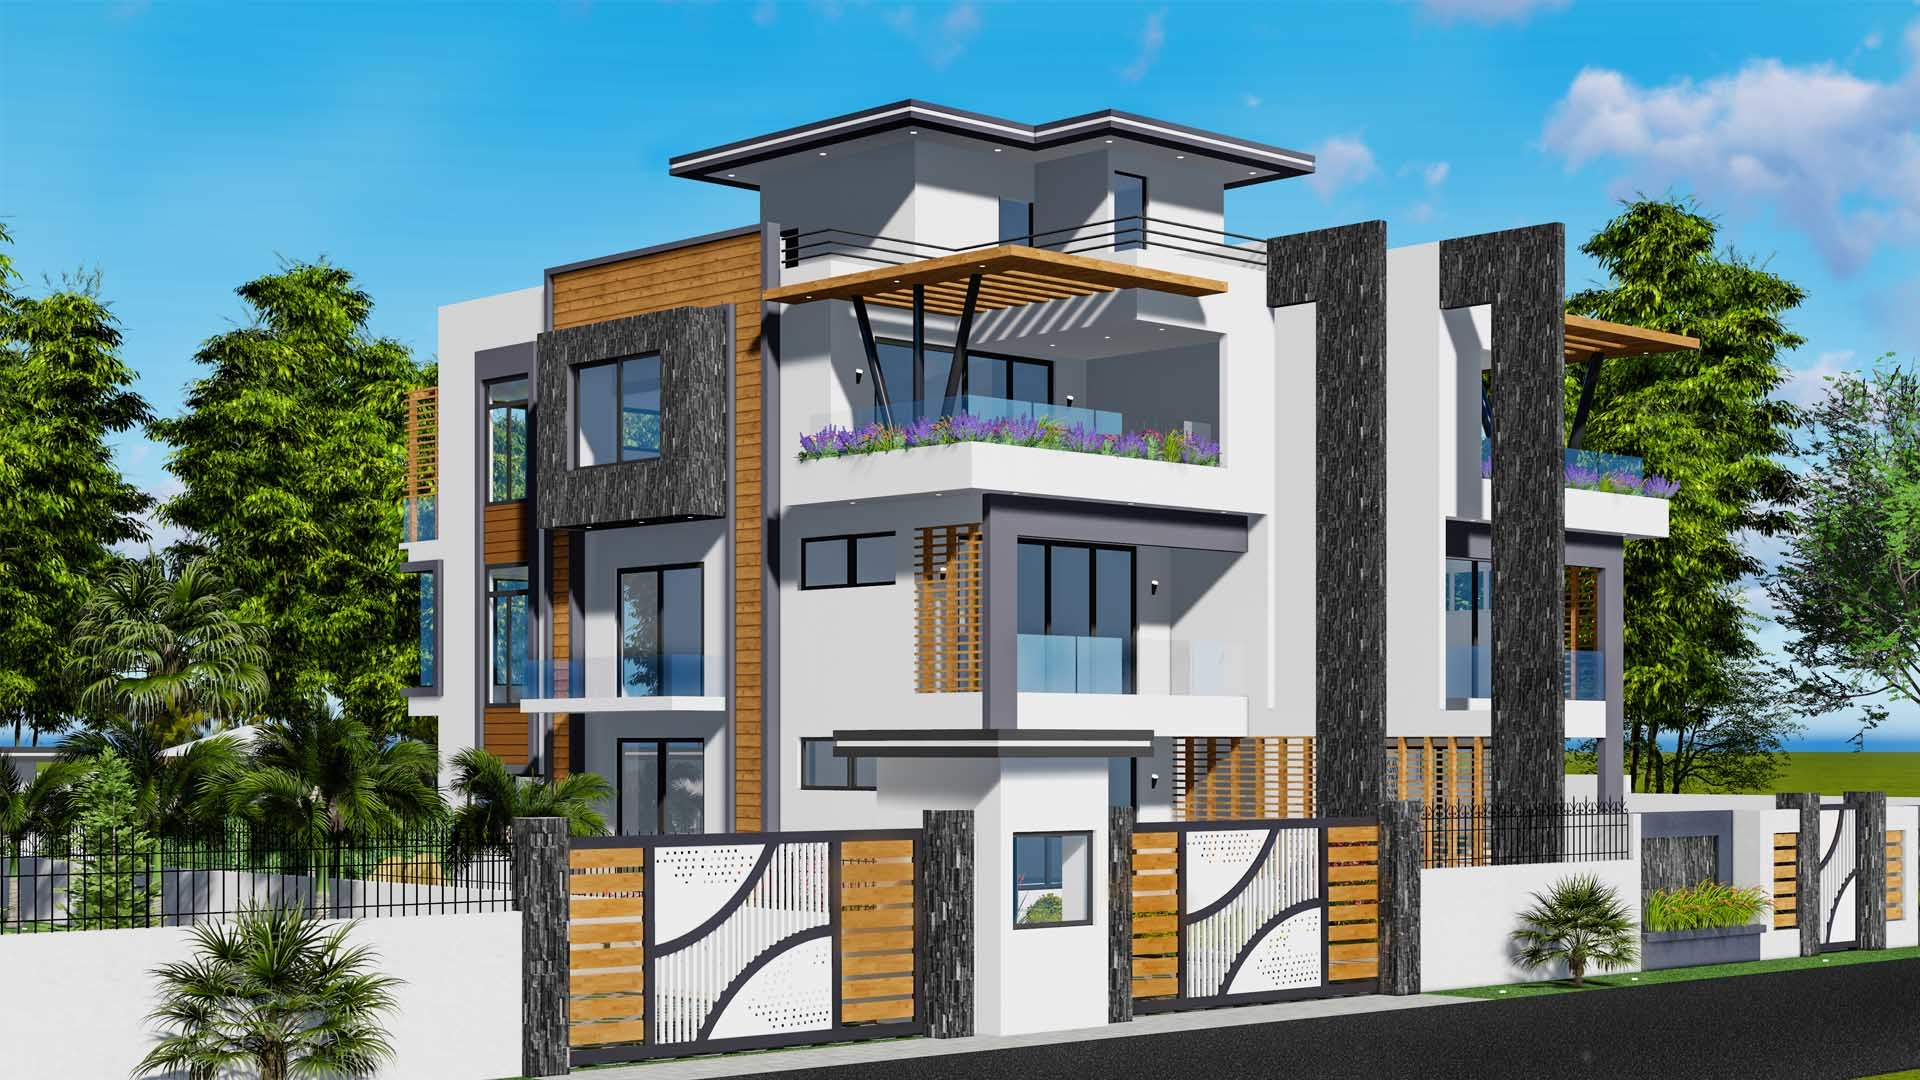 8930TWIN HOUSE DESIGN S